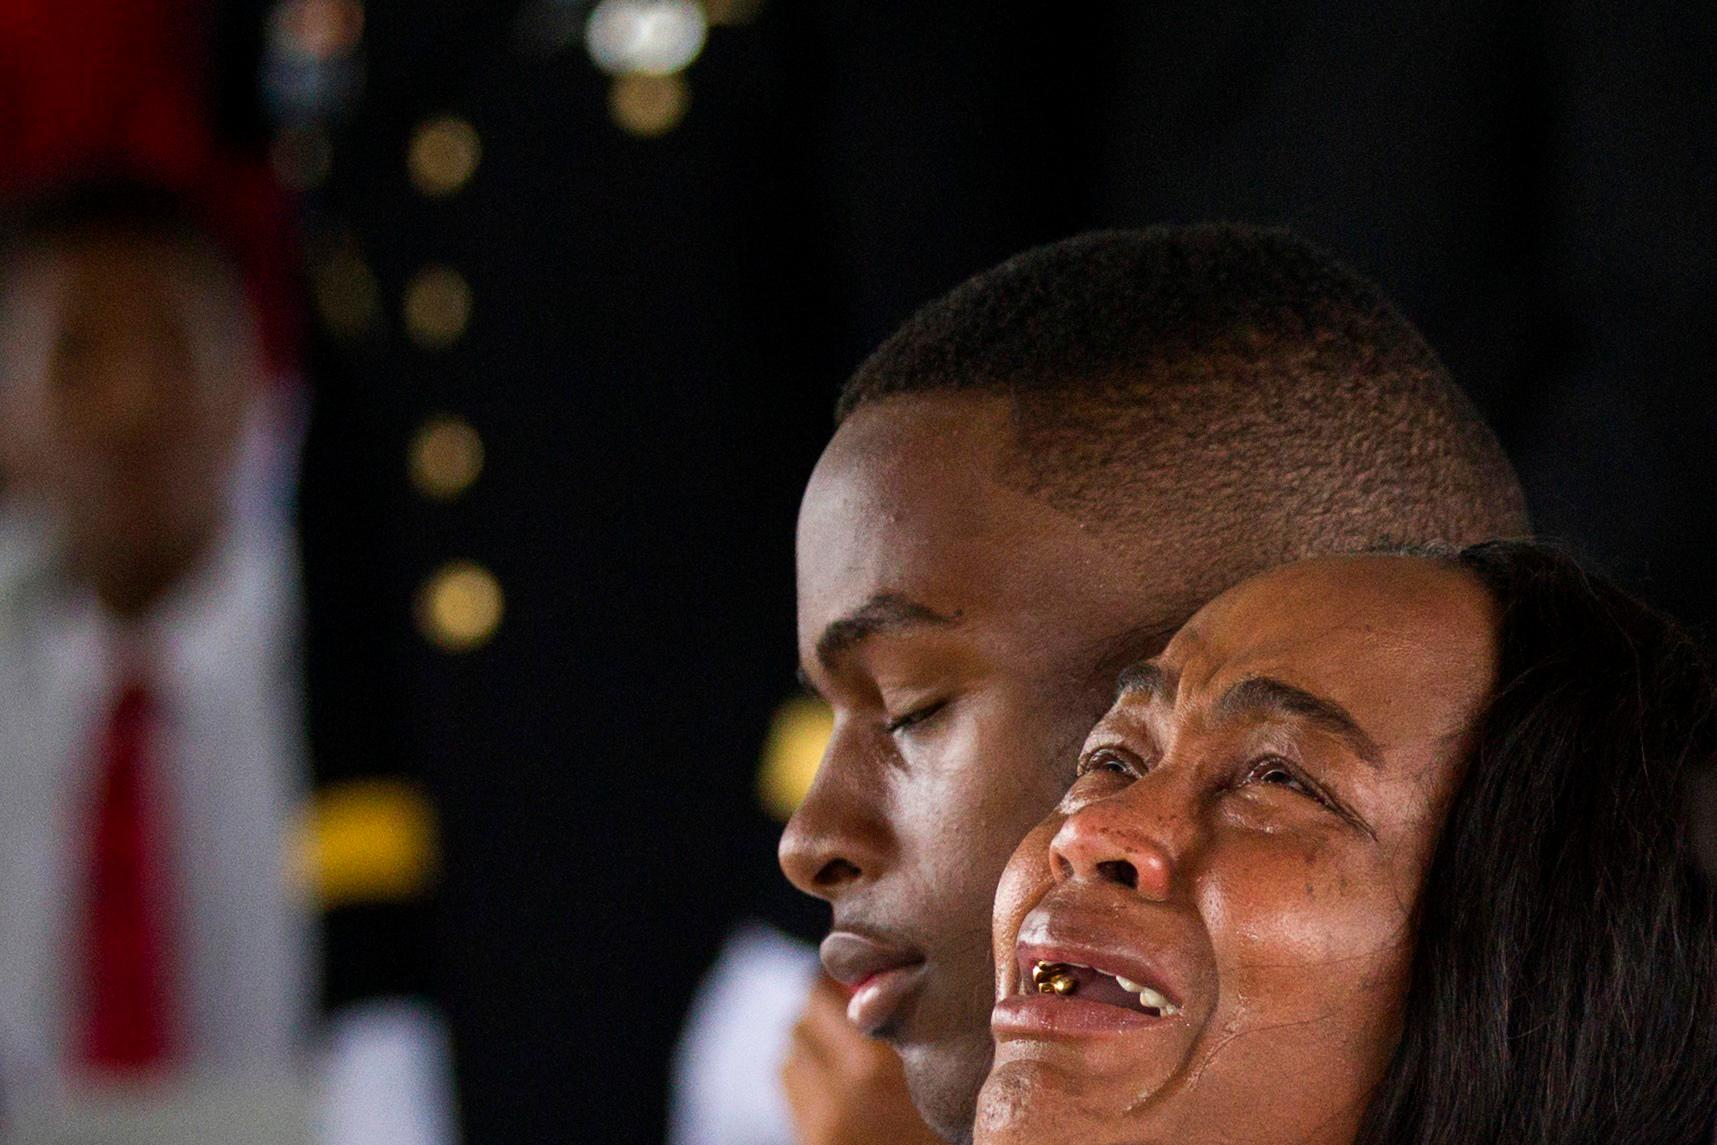 Cowanda Jones-Johnson, right, the aunt of Sgt. La David Johnson, weeps during his burial service at Fred Hunter's Hollywood Memorial Gardens in Hollywood, Fla., on Saturday, Oct. 21, 2017. Johnson was among four soldiers killed in Niger on Oct. 4 when they were attacked by militants tied to the Islamic State.  (Matias J. Ocner/Miami Herald via AP)